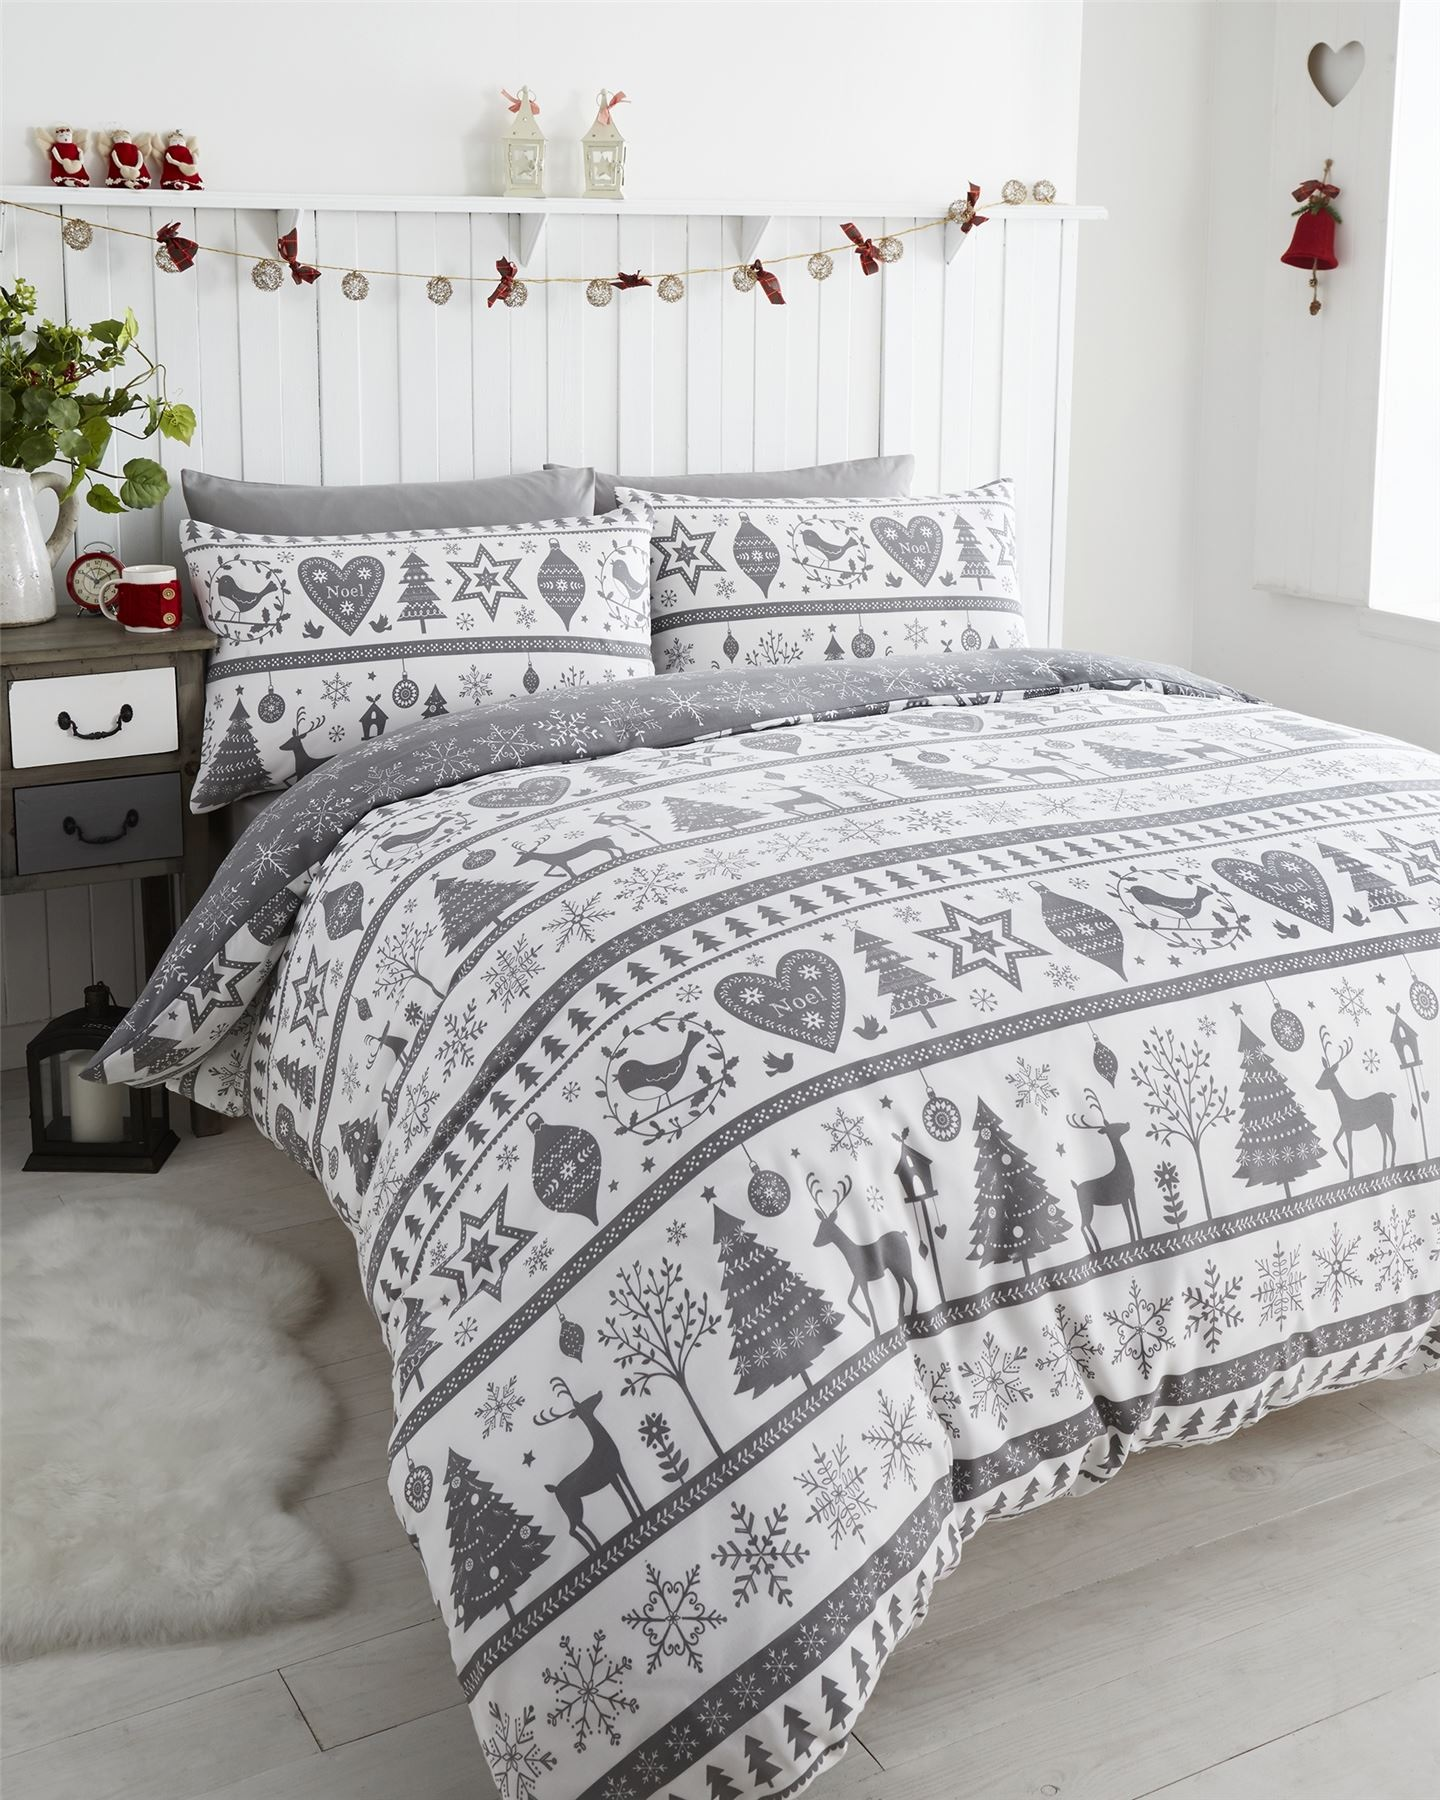 FATHER CHRISTMAS TREE SANTA REINDEER SNOWMAN QUILT DUVET COVER ...